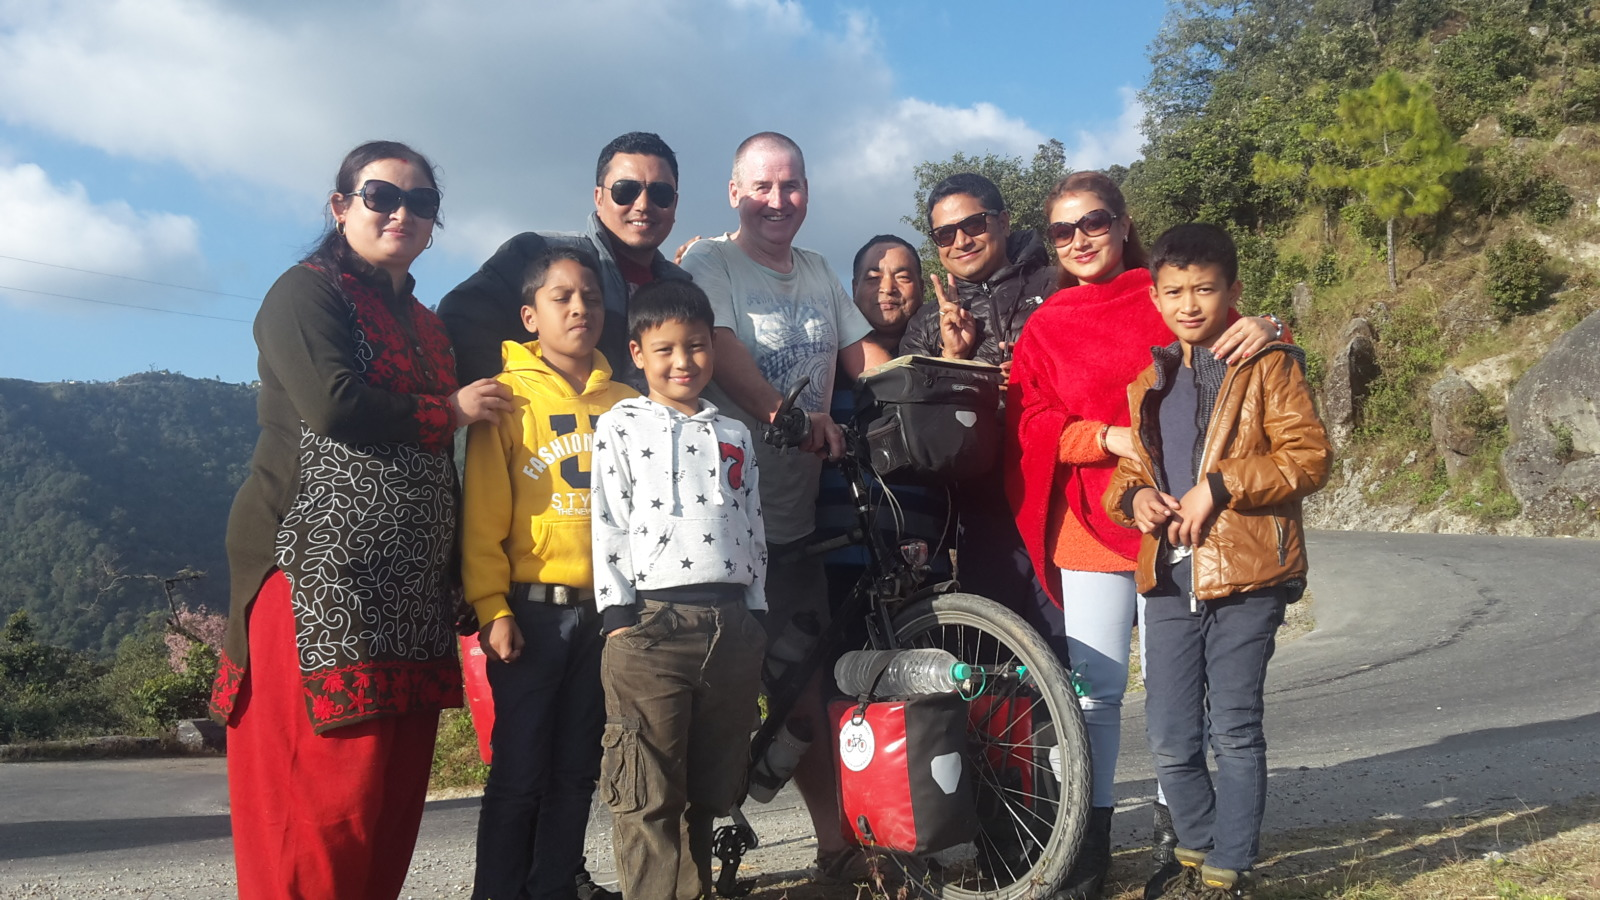 Garry McGivern with some local Nepalese people